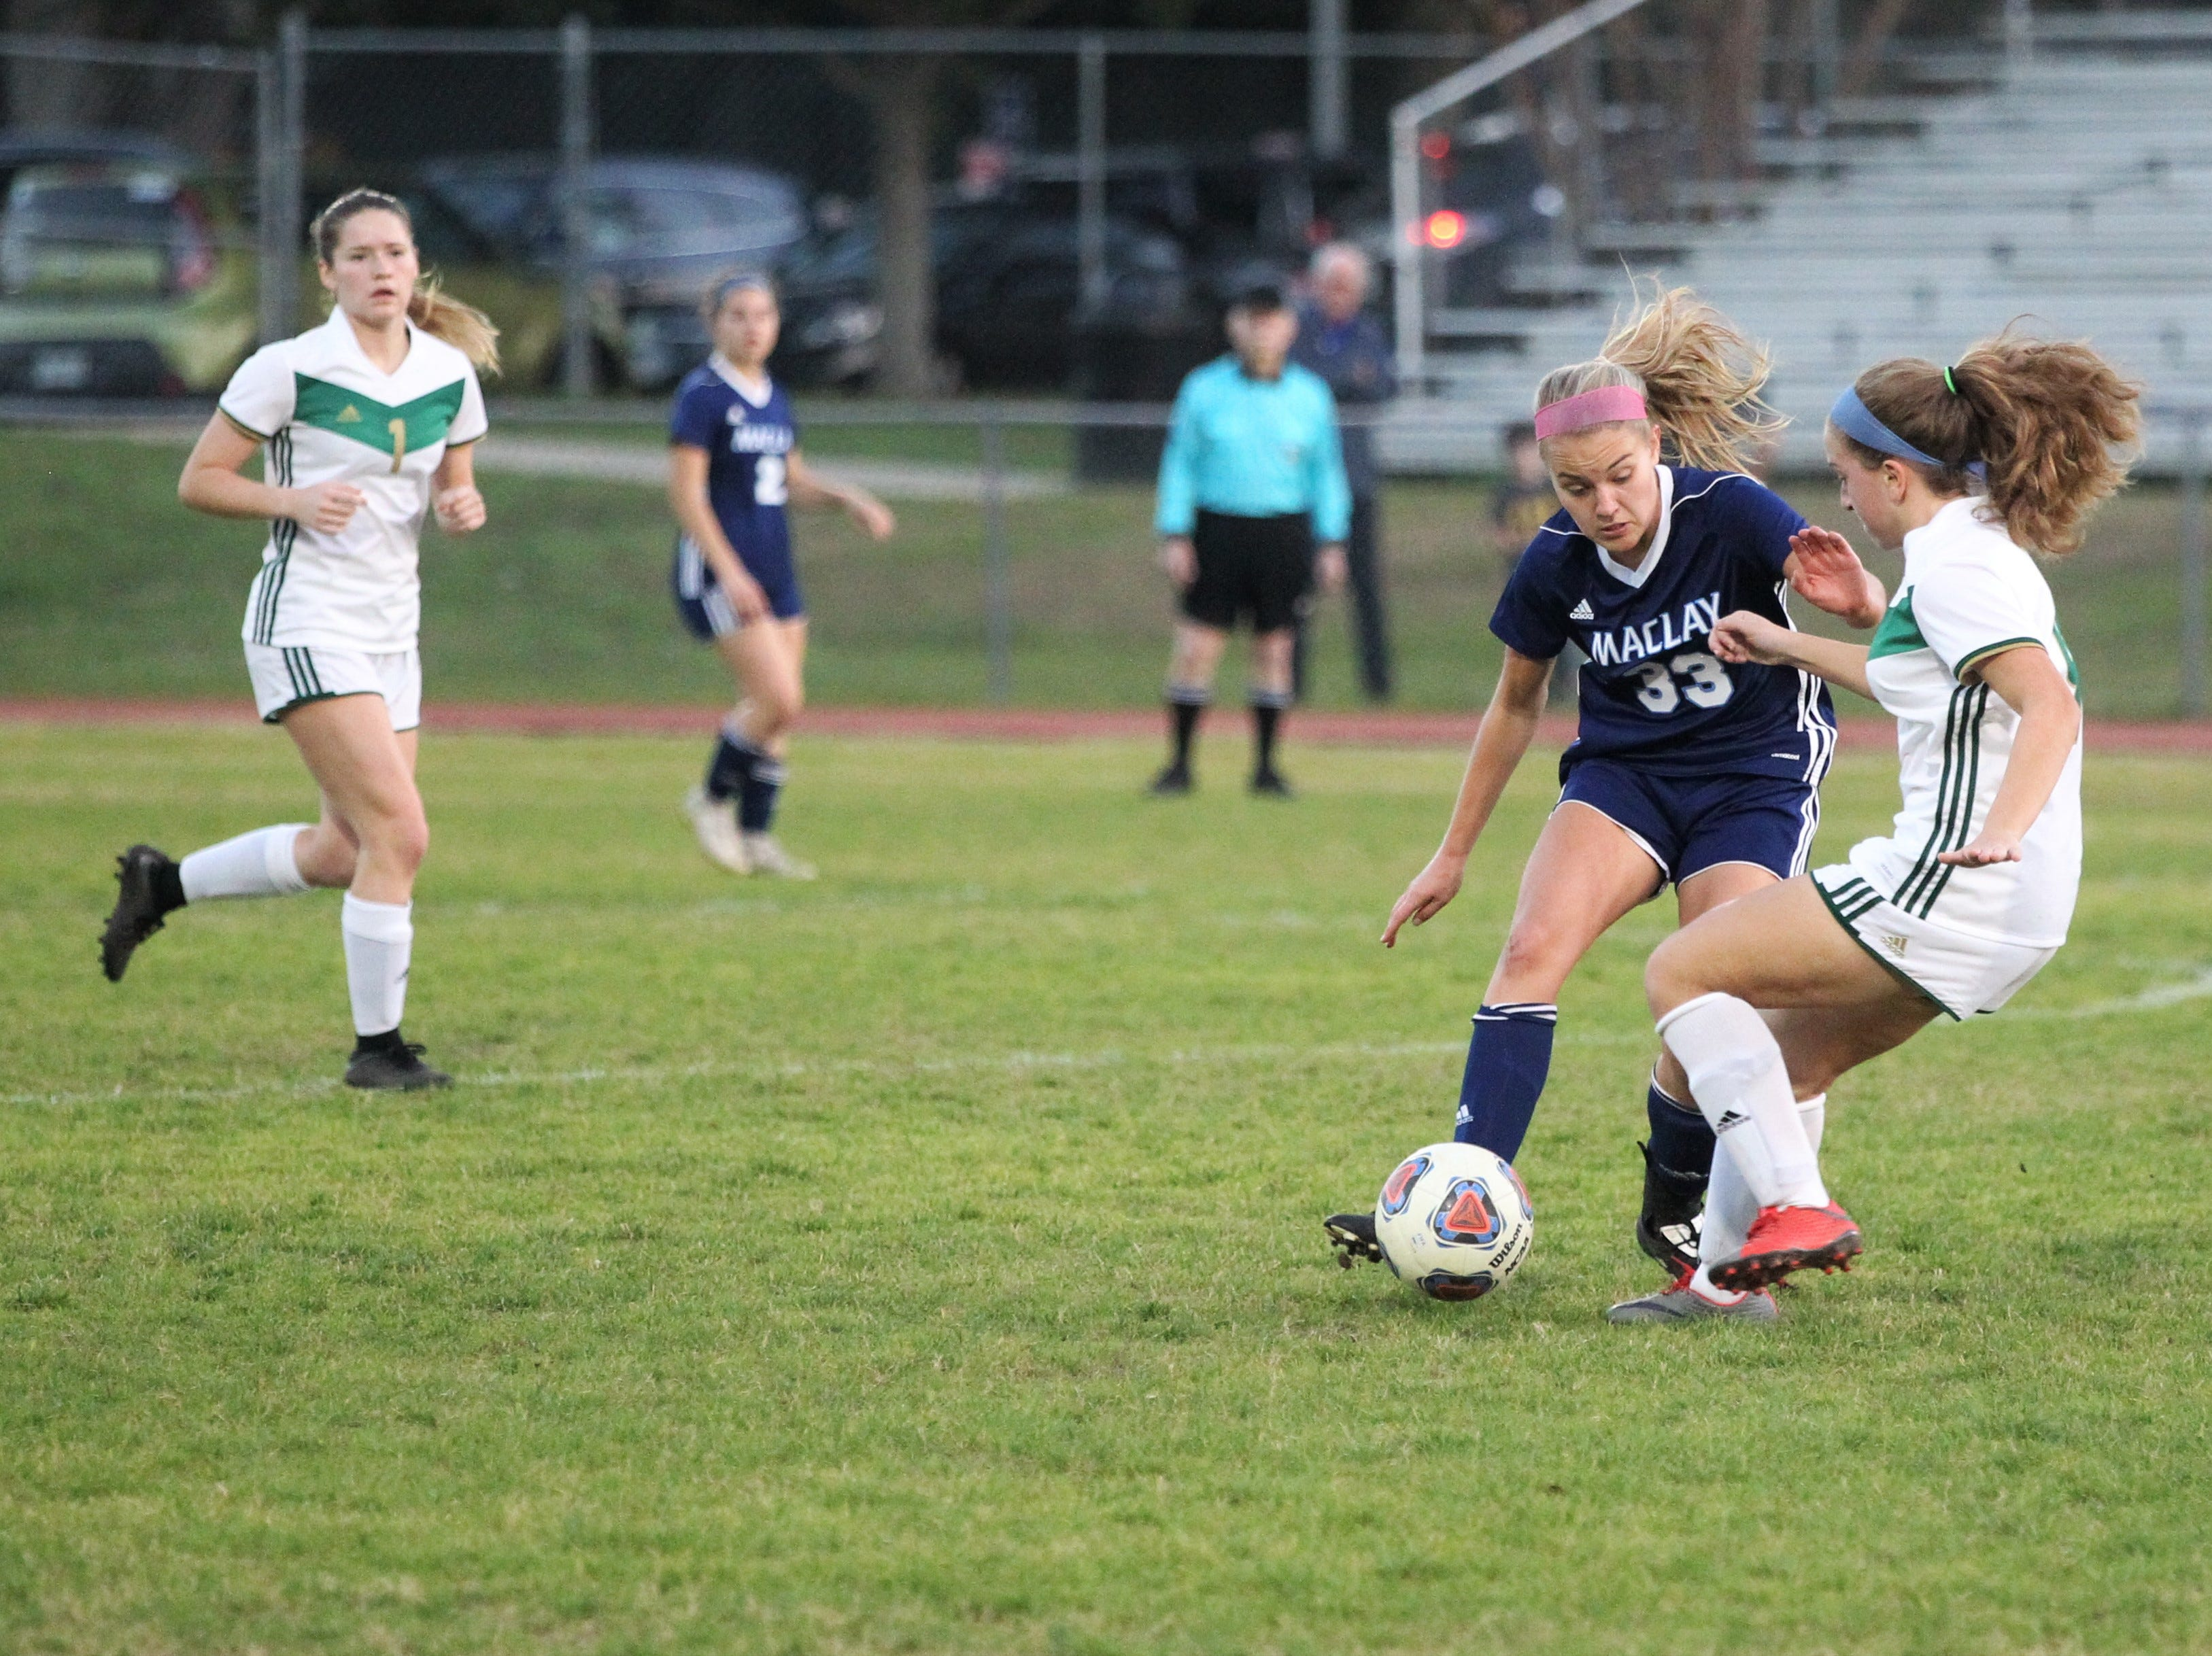 Maclay's Colleen Donahue prepares for a collision as Maclay's girls soccer team beat St. Joseph Academy 4-0 in a Region 1-1A quarterfinal on Jan. 5, 2019.